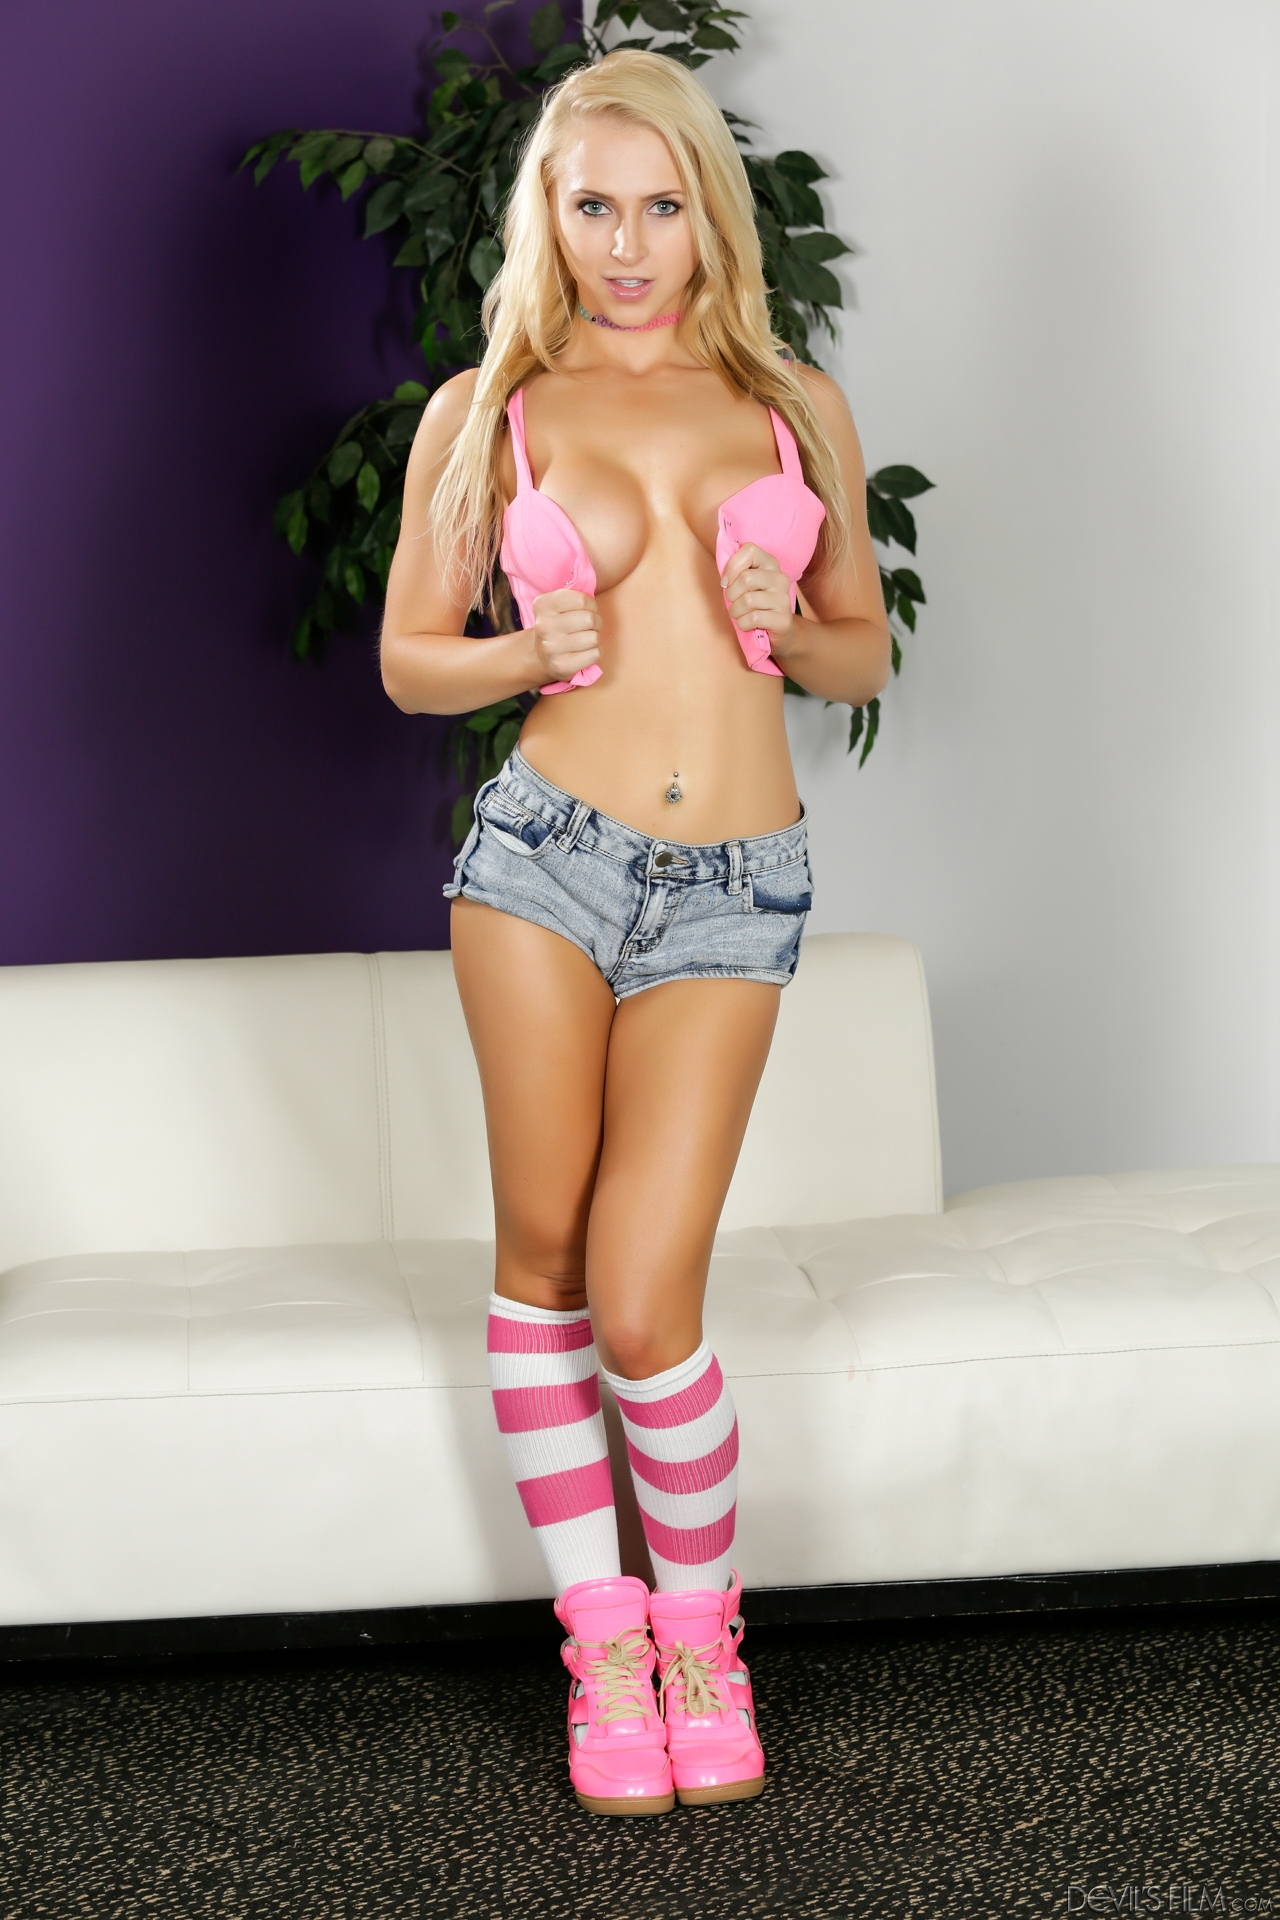 Perfect blonde teen pornstar non nude pinup